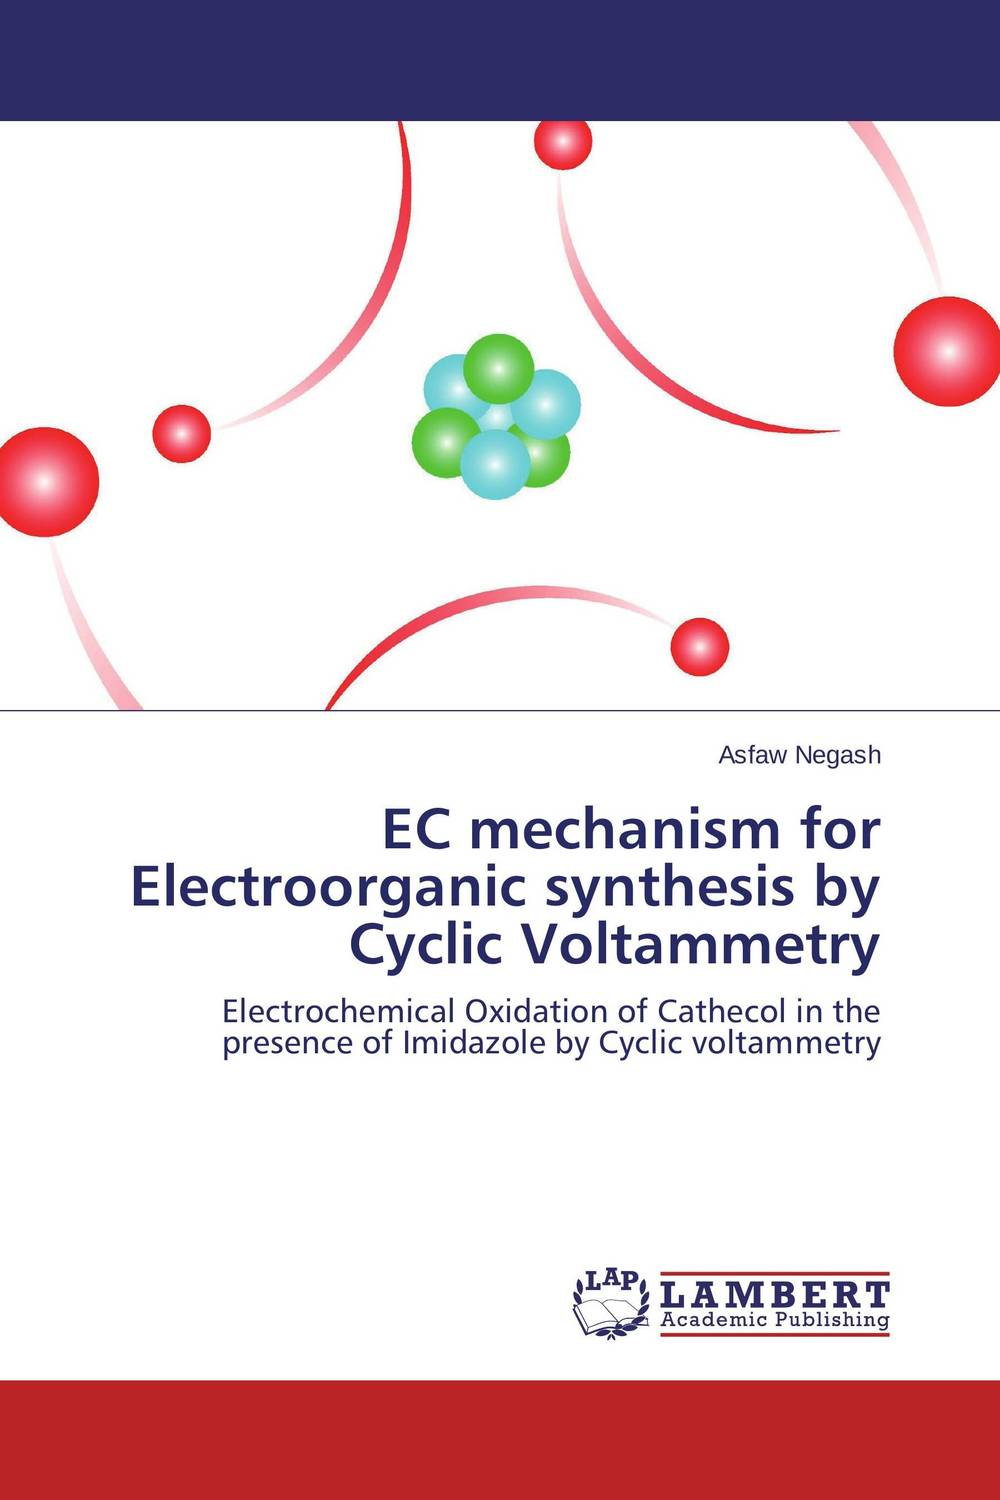 EC mechanism for Electroorganic synthesis by Cyclic Voltammetry the role of evaluation as a mechanism for advancing principal practice